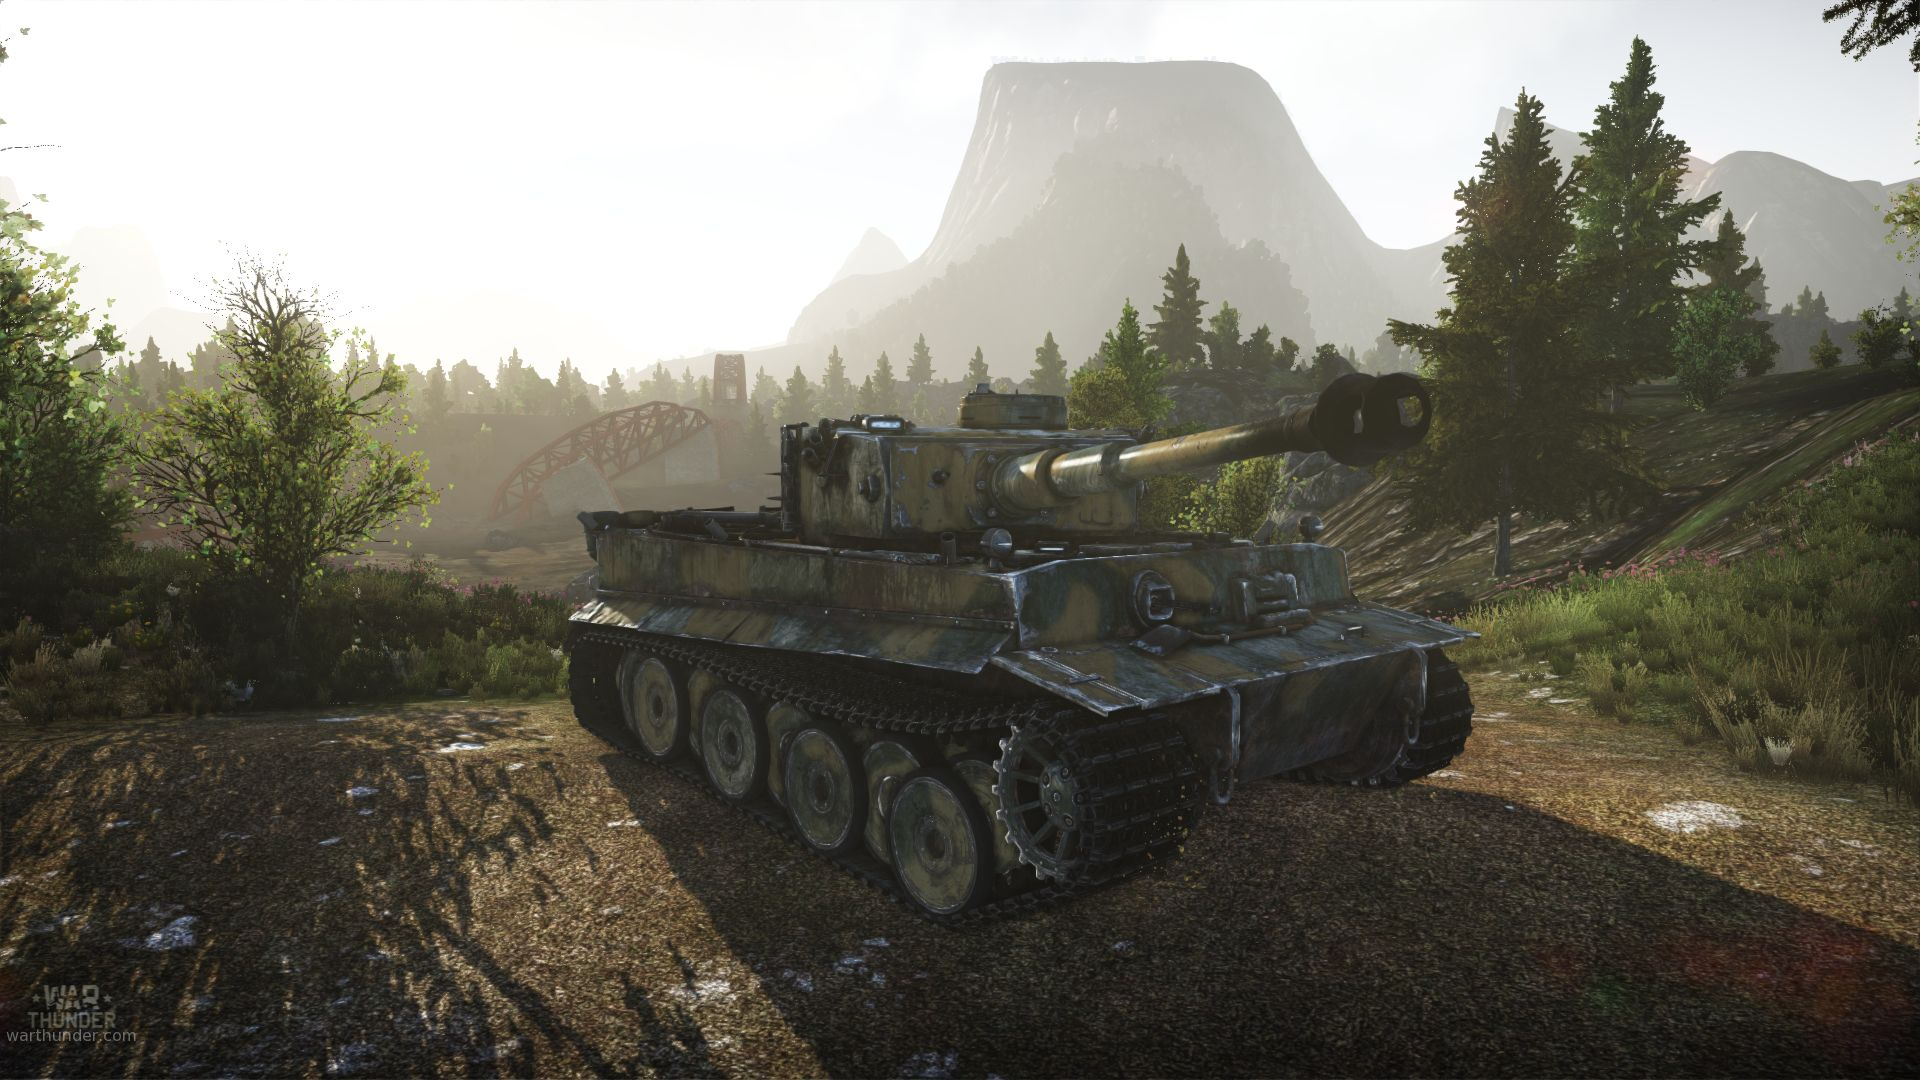 The mechanics of tank driving is geared towards realism